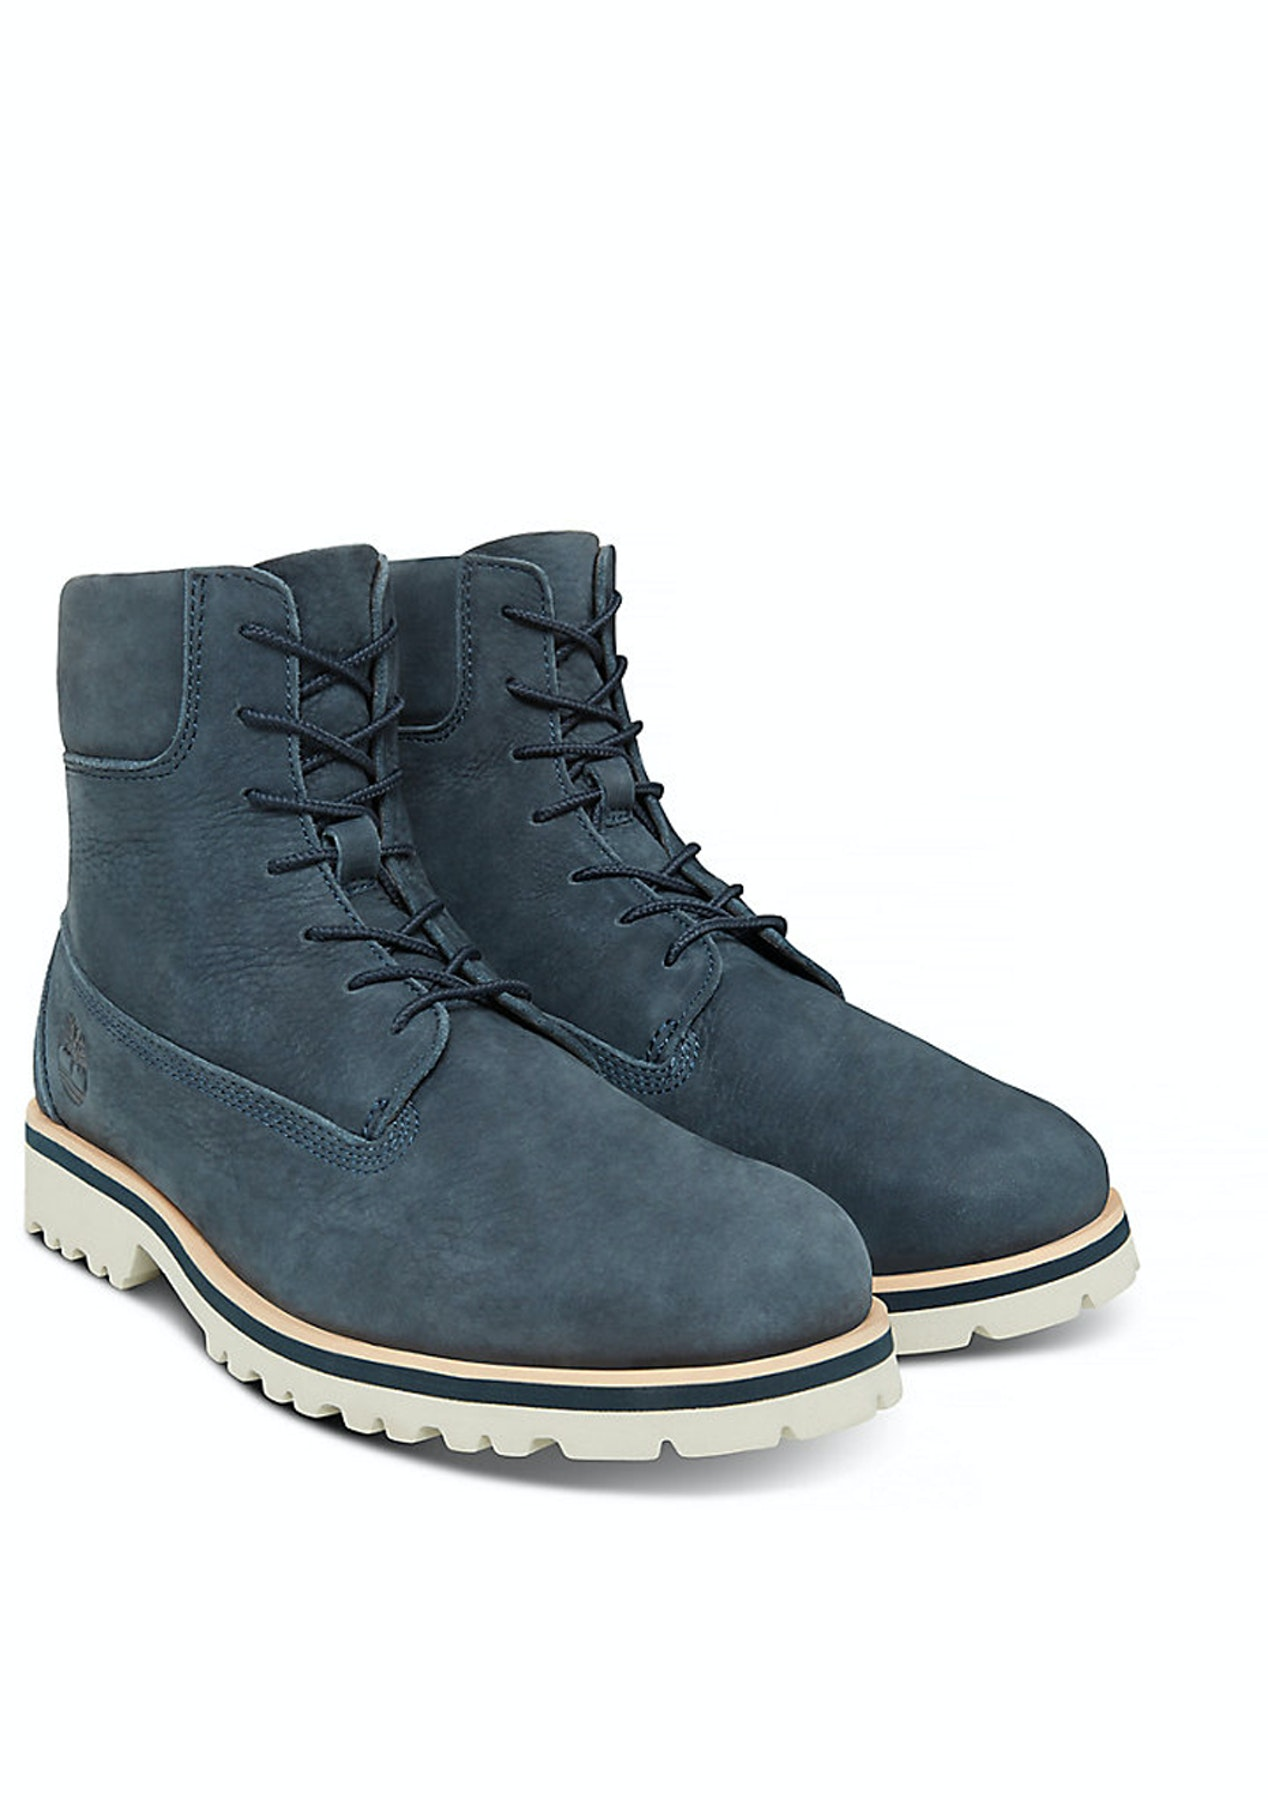 abeeabc2 Timberland - Mens Chilmark 6-Inch Boot - Navy - Timberland - Onceit